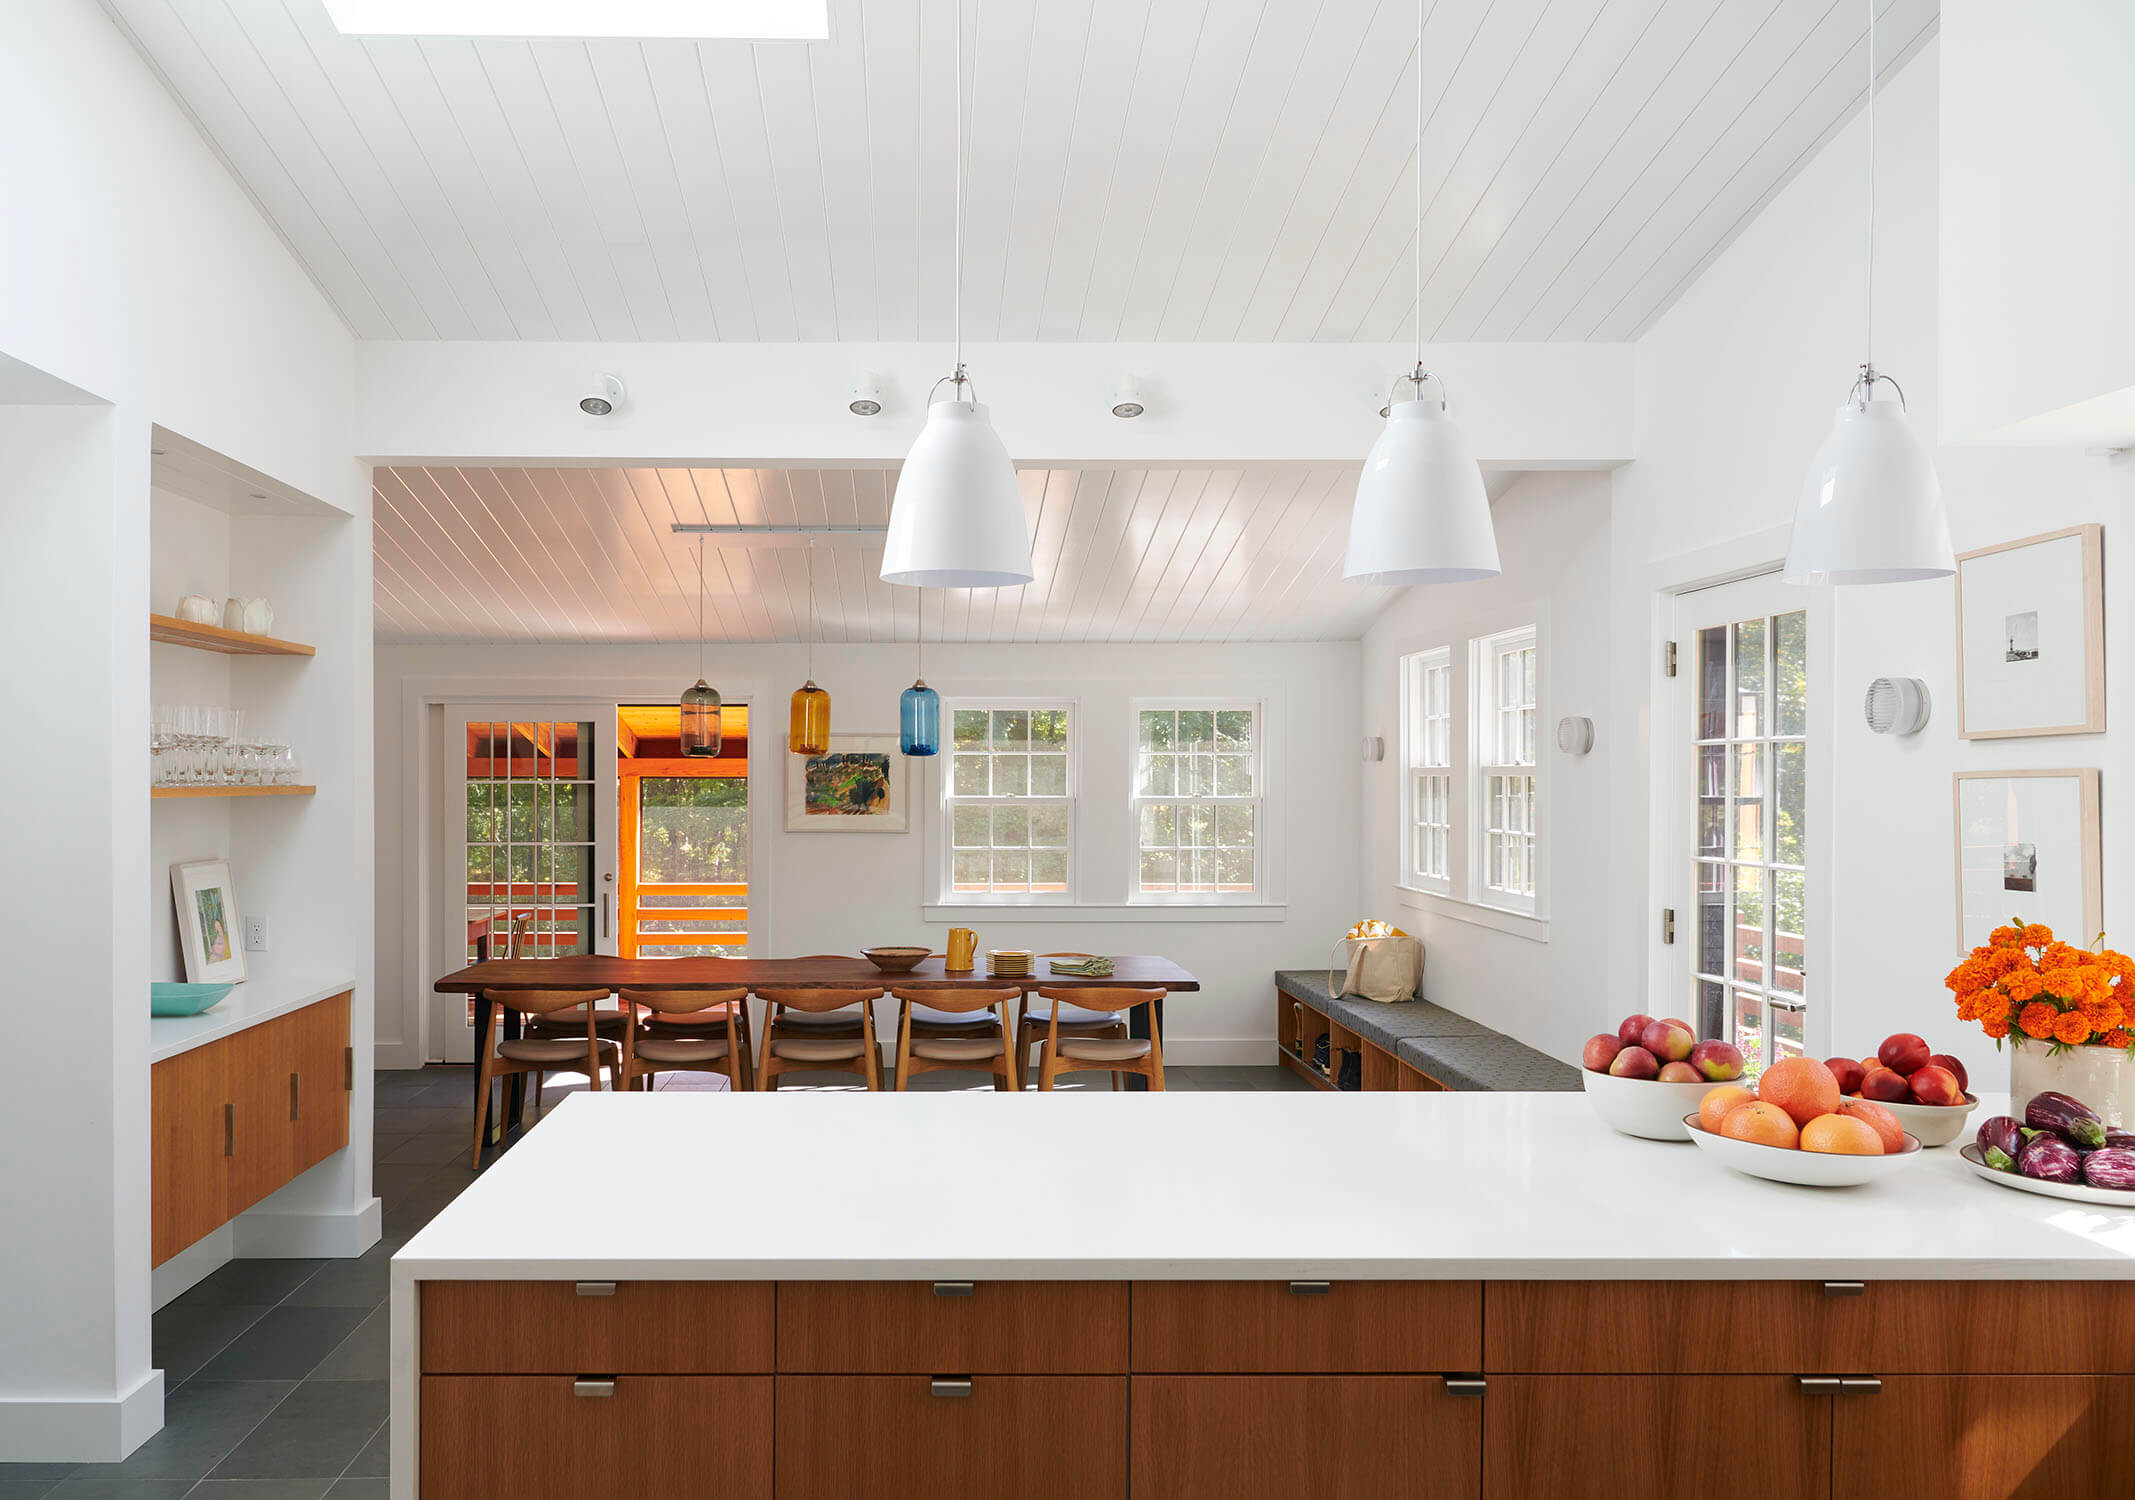 A new kitchen for multiple cooks in the addition of this CT house.